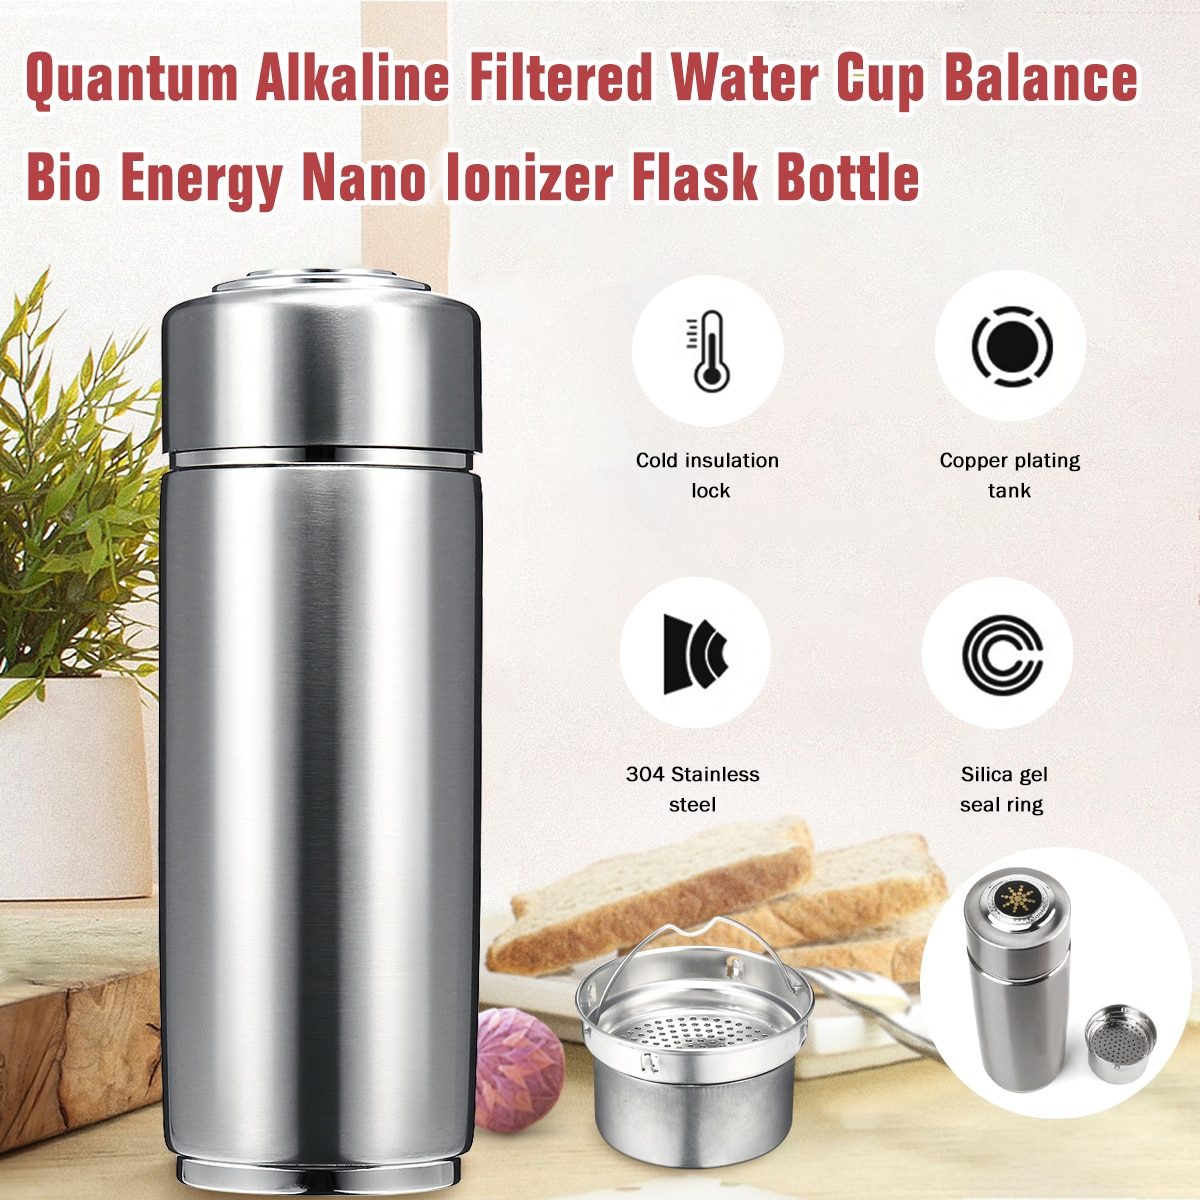 Stainless Steel Quantum Alkaline Filtered  400ml Water Cup Balance Bio Energy Nanos Ionizer Flask Bottle Electrolytic Energy Cup